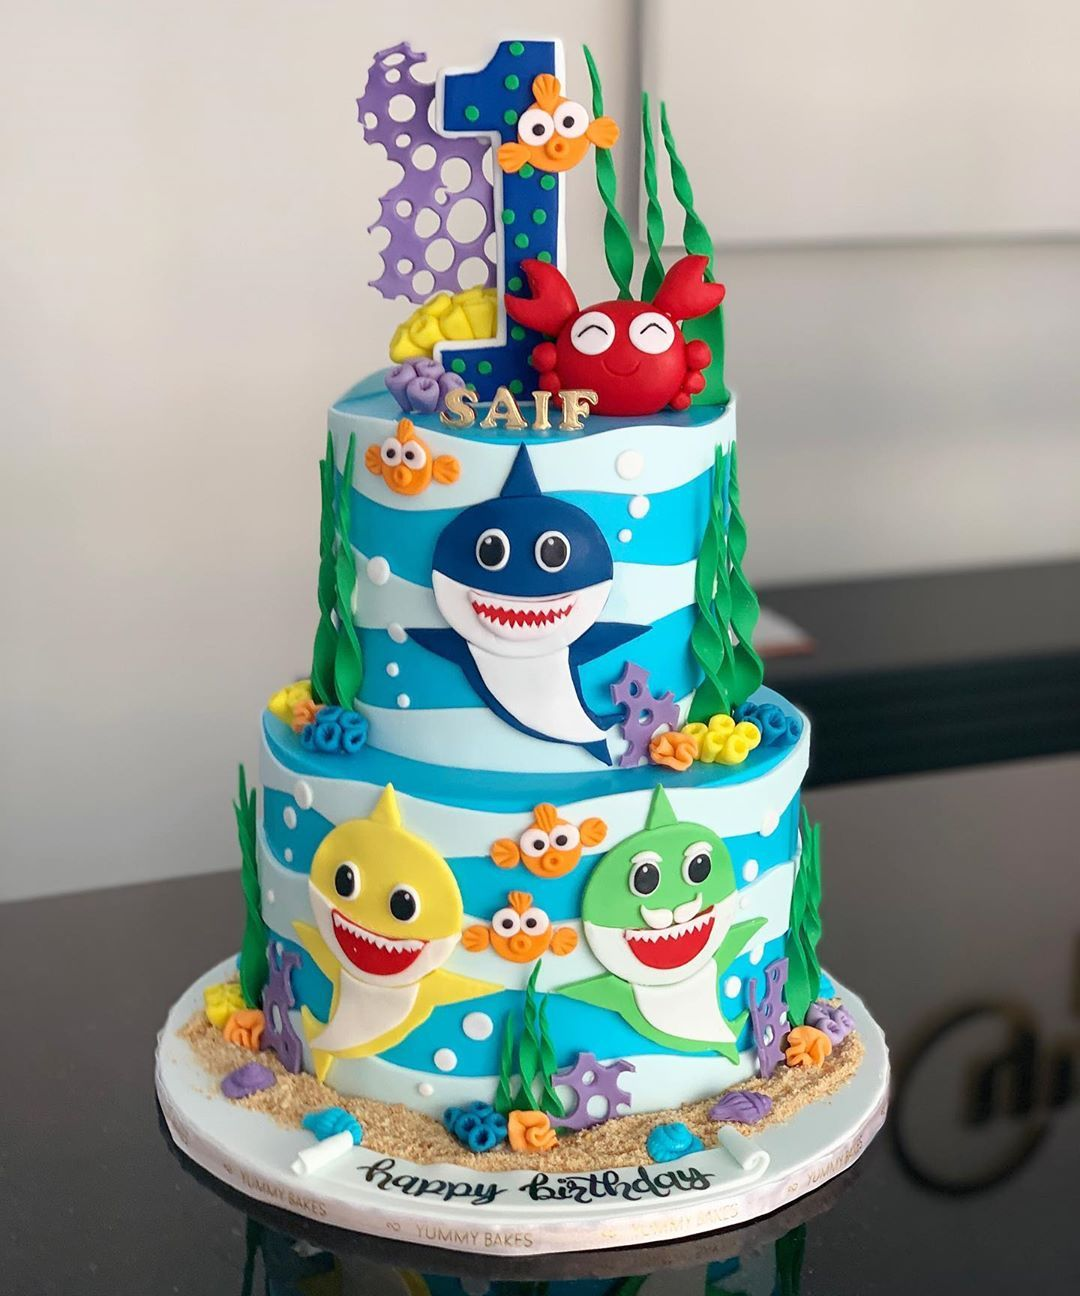 53 Likes 5 Comments Yummy Bakes Custom Desserts Yummybakes On Instagram كيكه البيبي شارك Baby Shark Party Cakes Custom Desserts Desserts